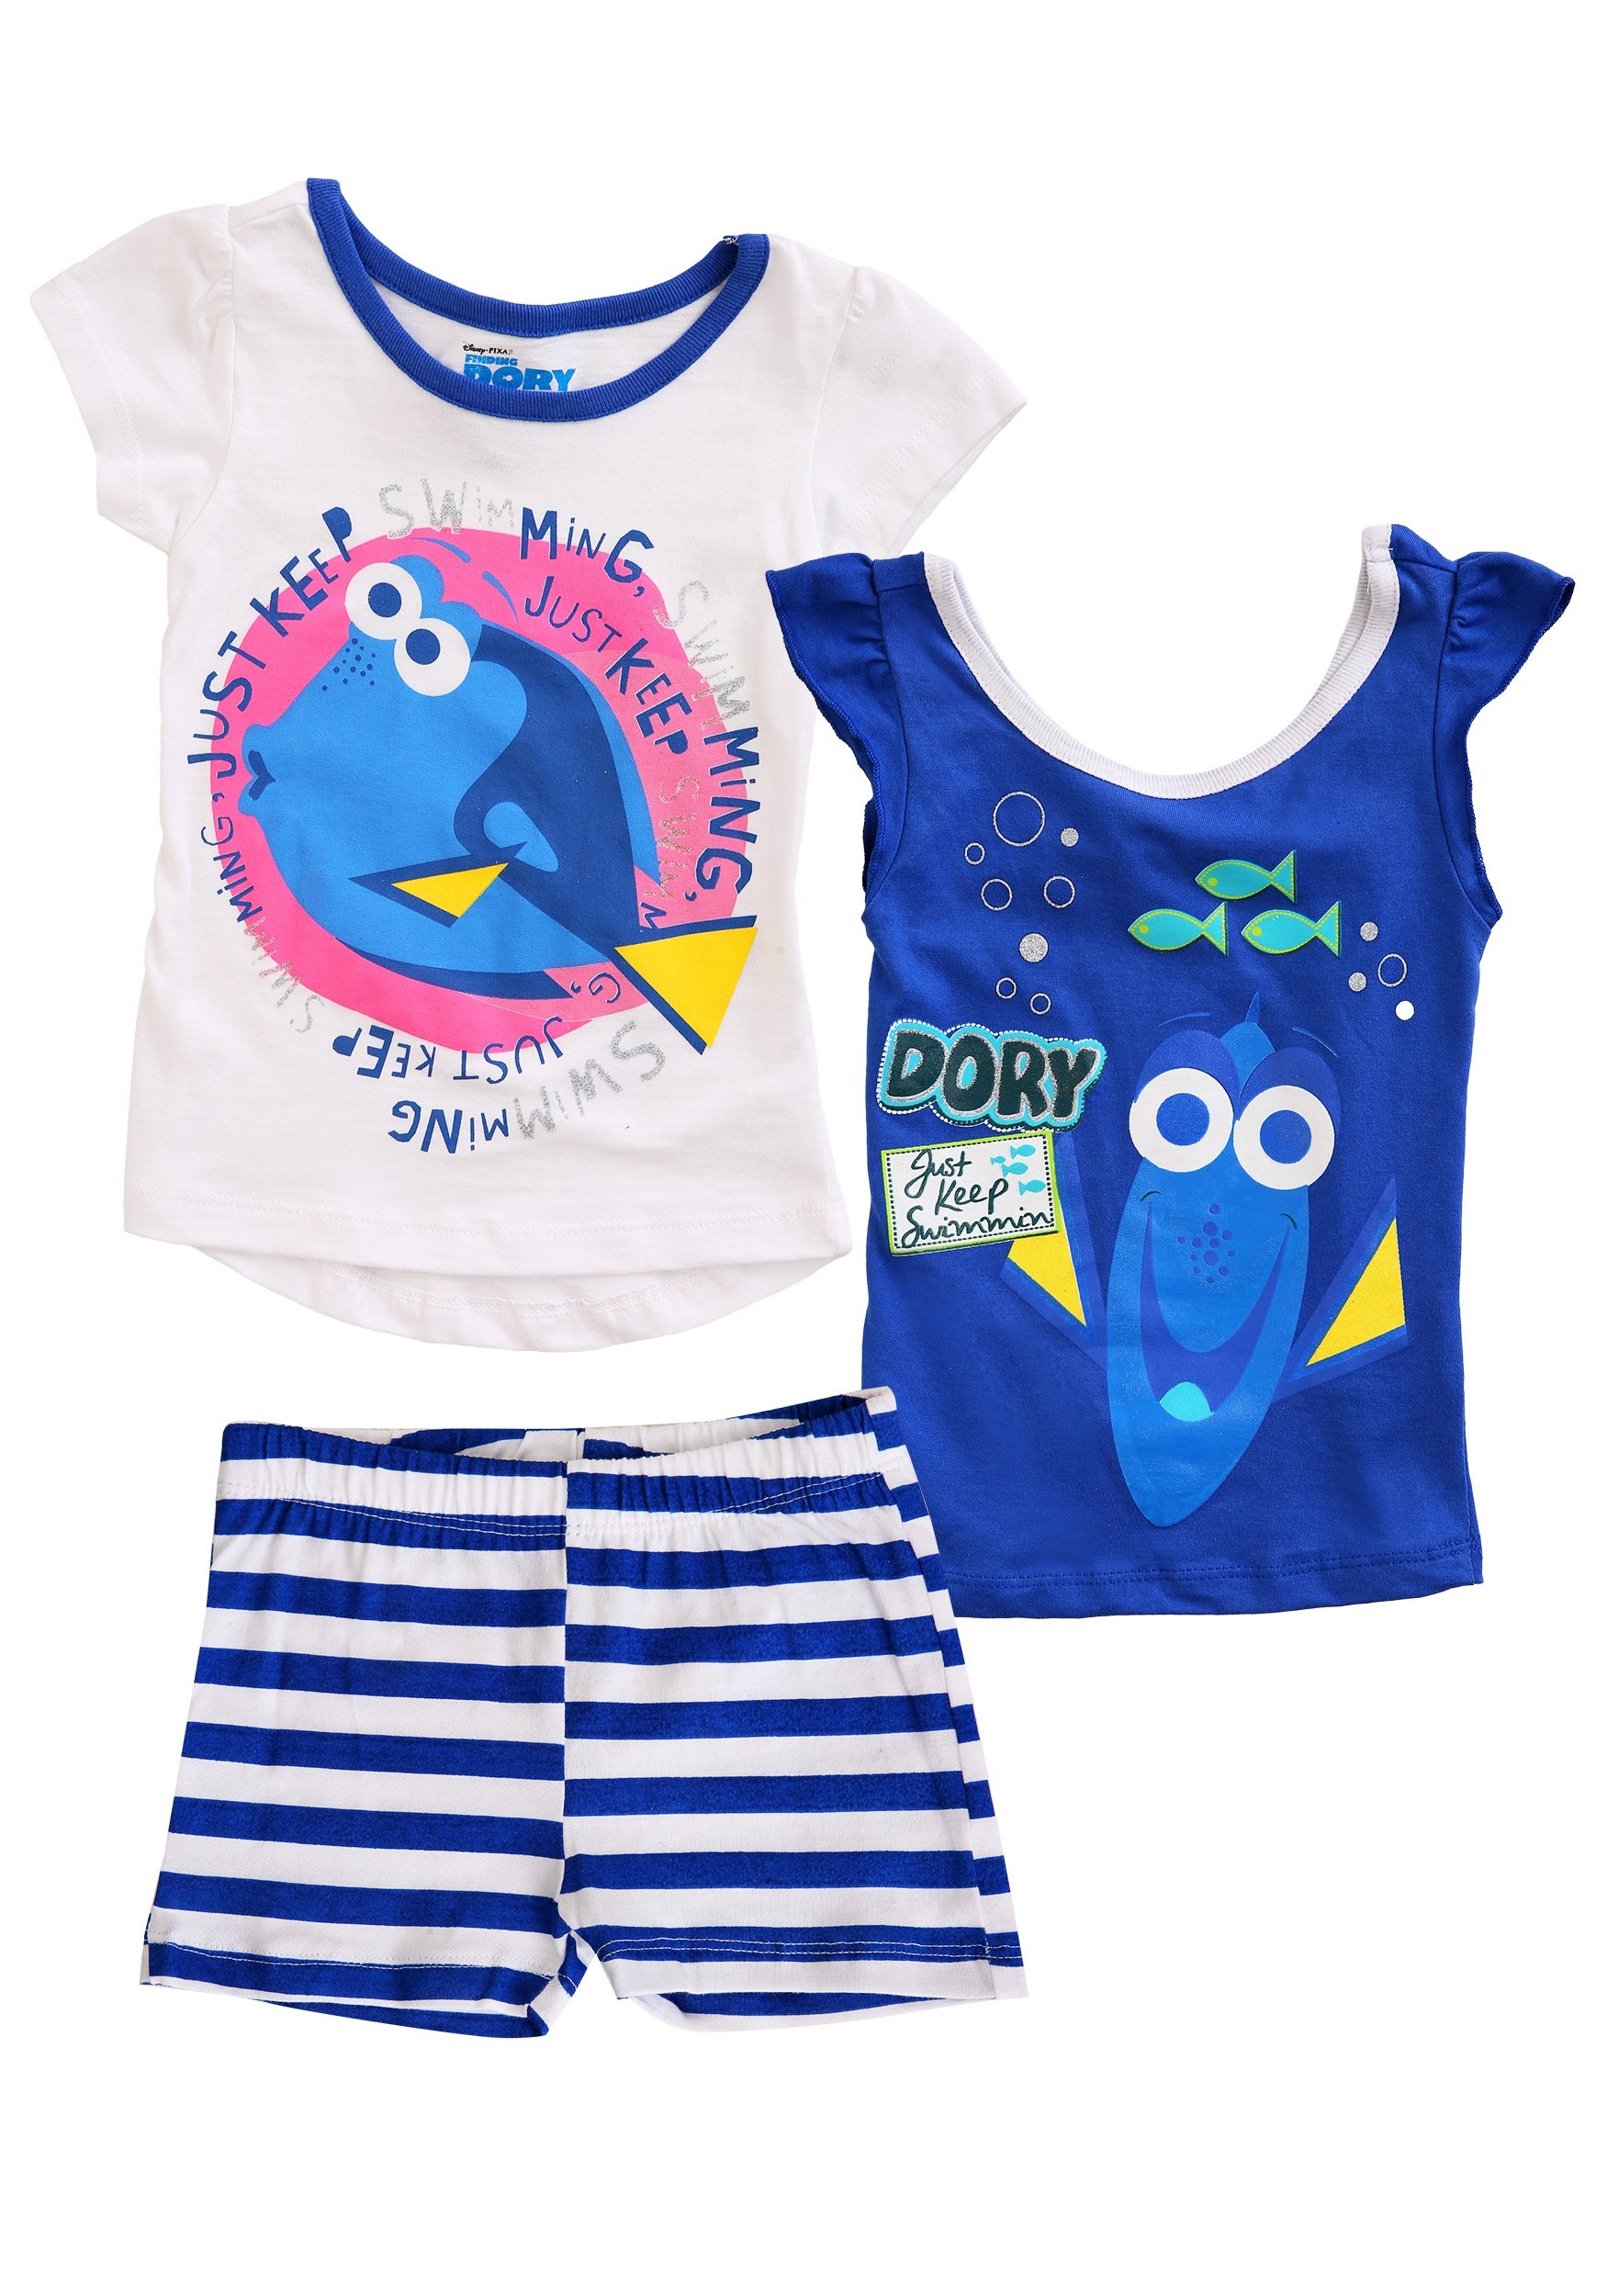 Finding Dory Girls 3 Piece Set CAP4PD7865